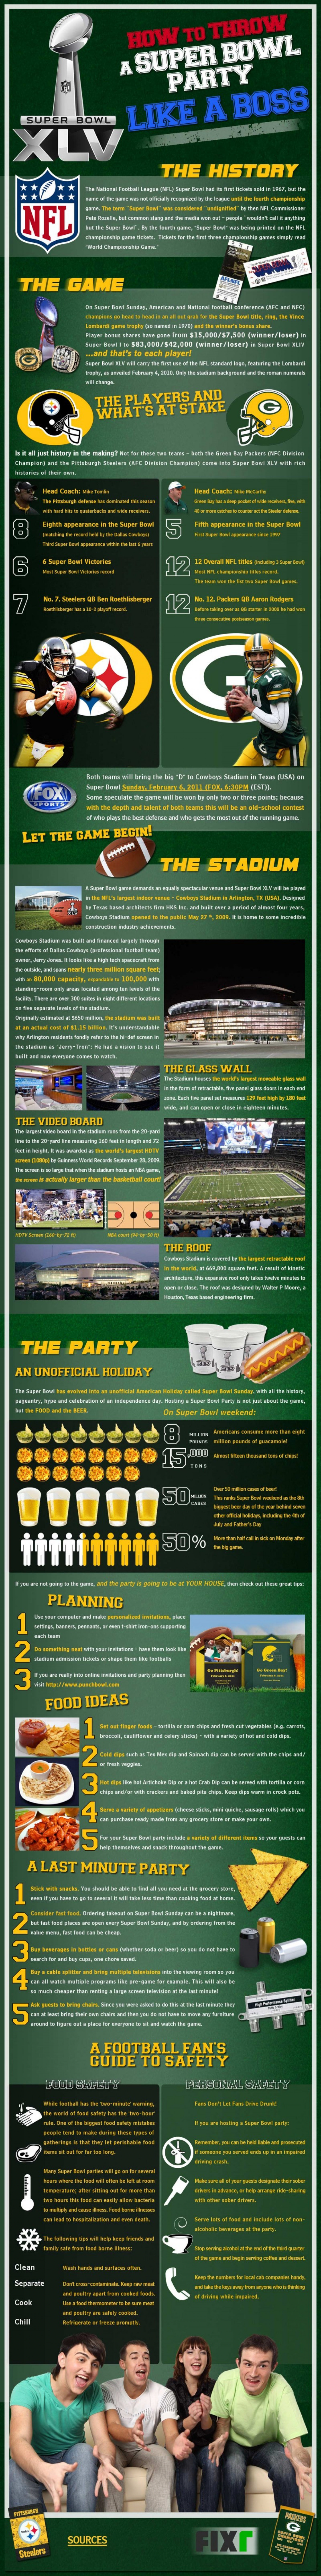 How to Throw a Super Bowl Party like a Boss Infographic